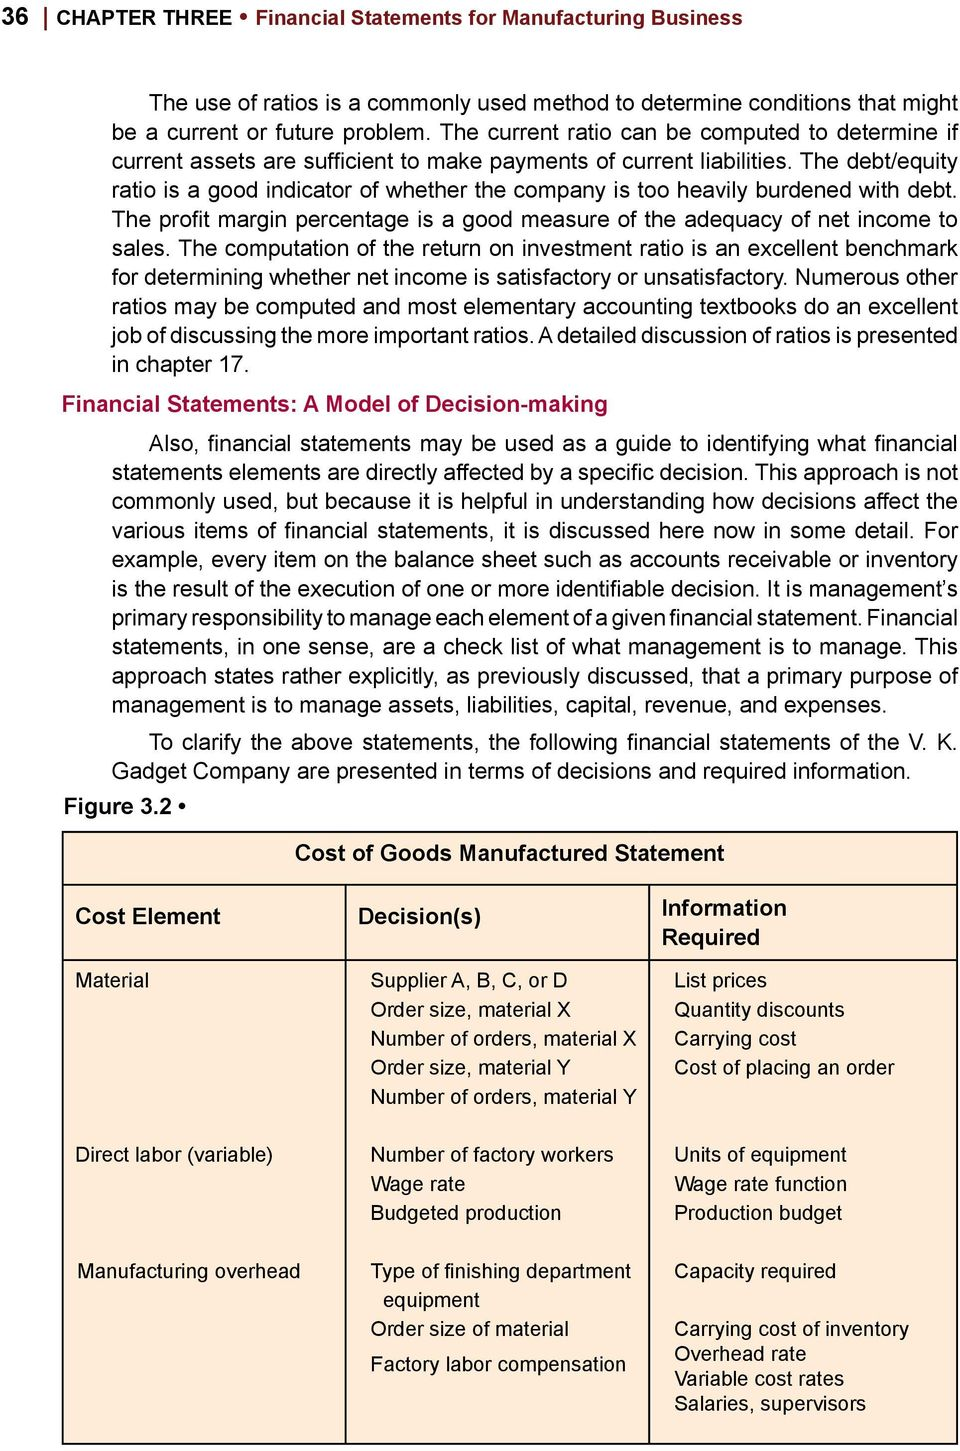 Financial Statements for Manufacturing Businesses - PDF